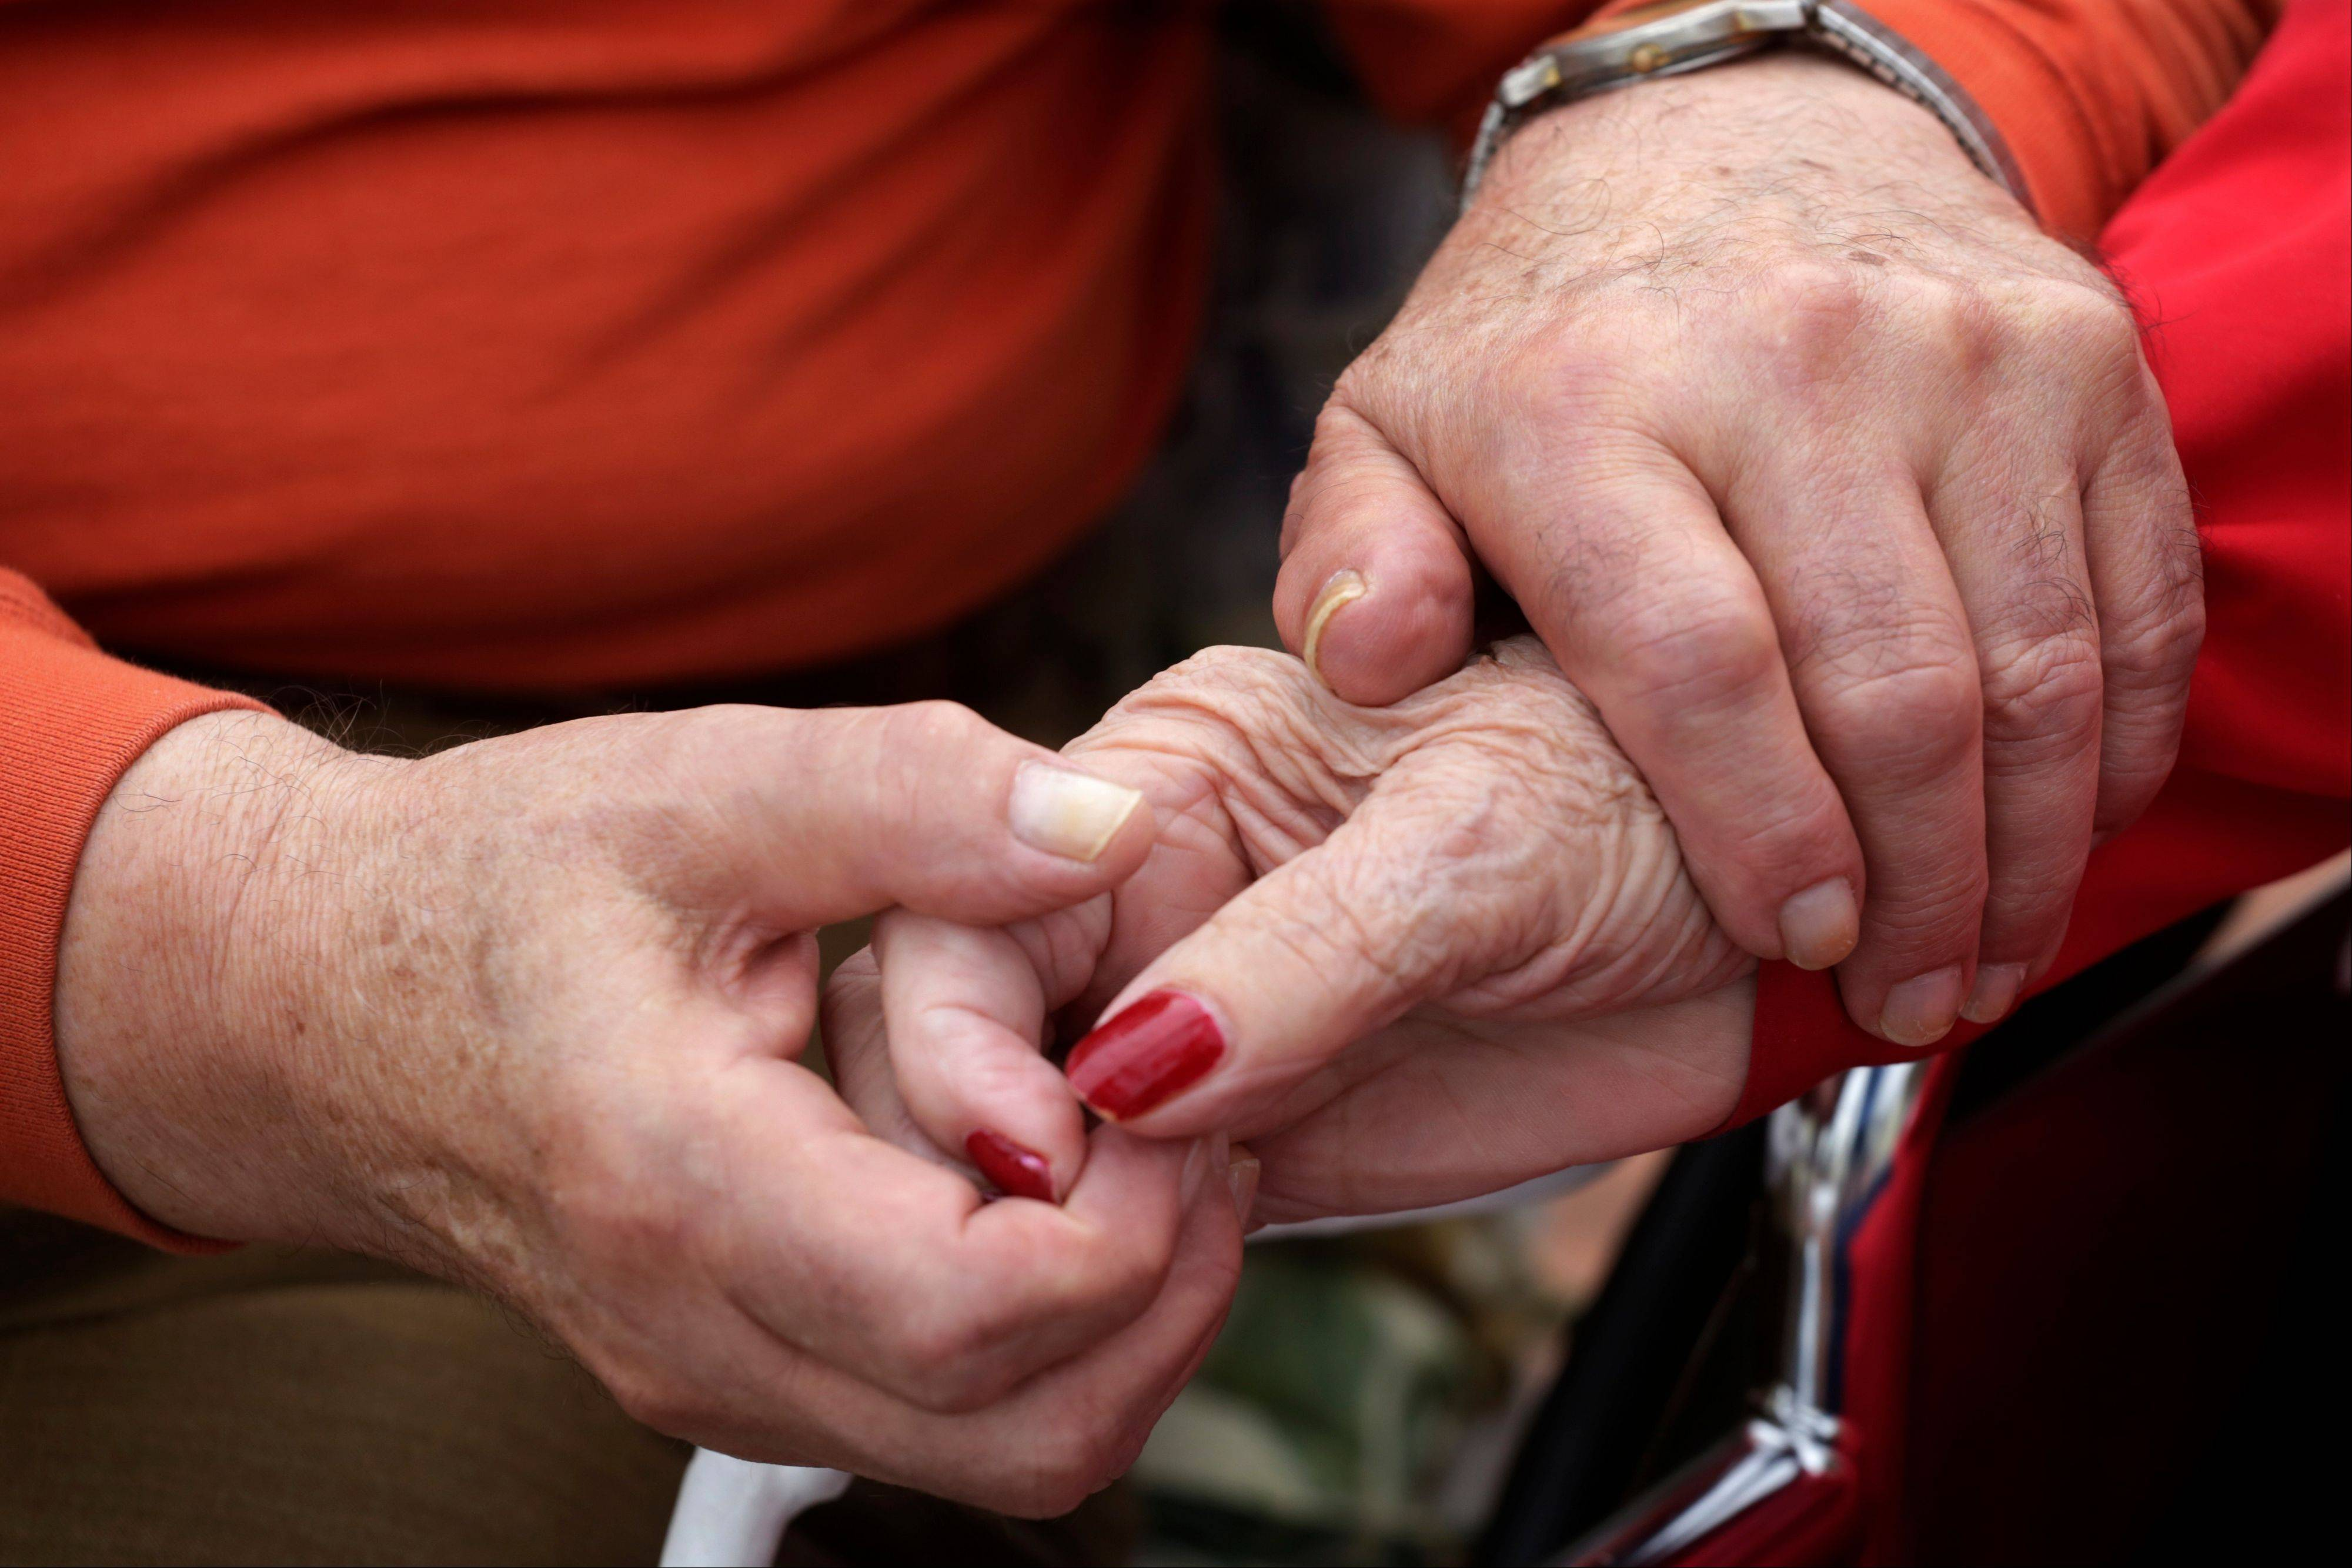 Holocaust survivor Joe Chaba holds hand with his wife, Helen.